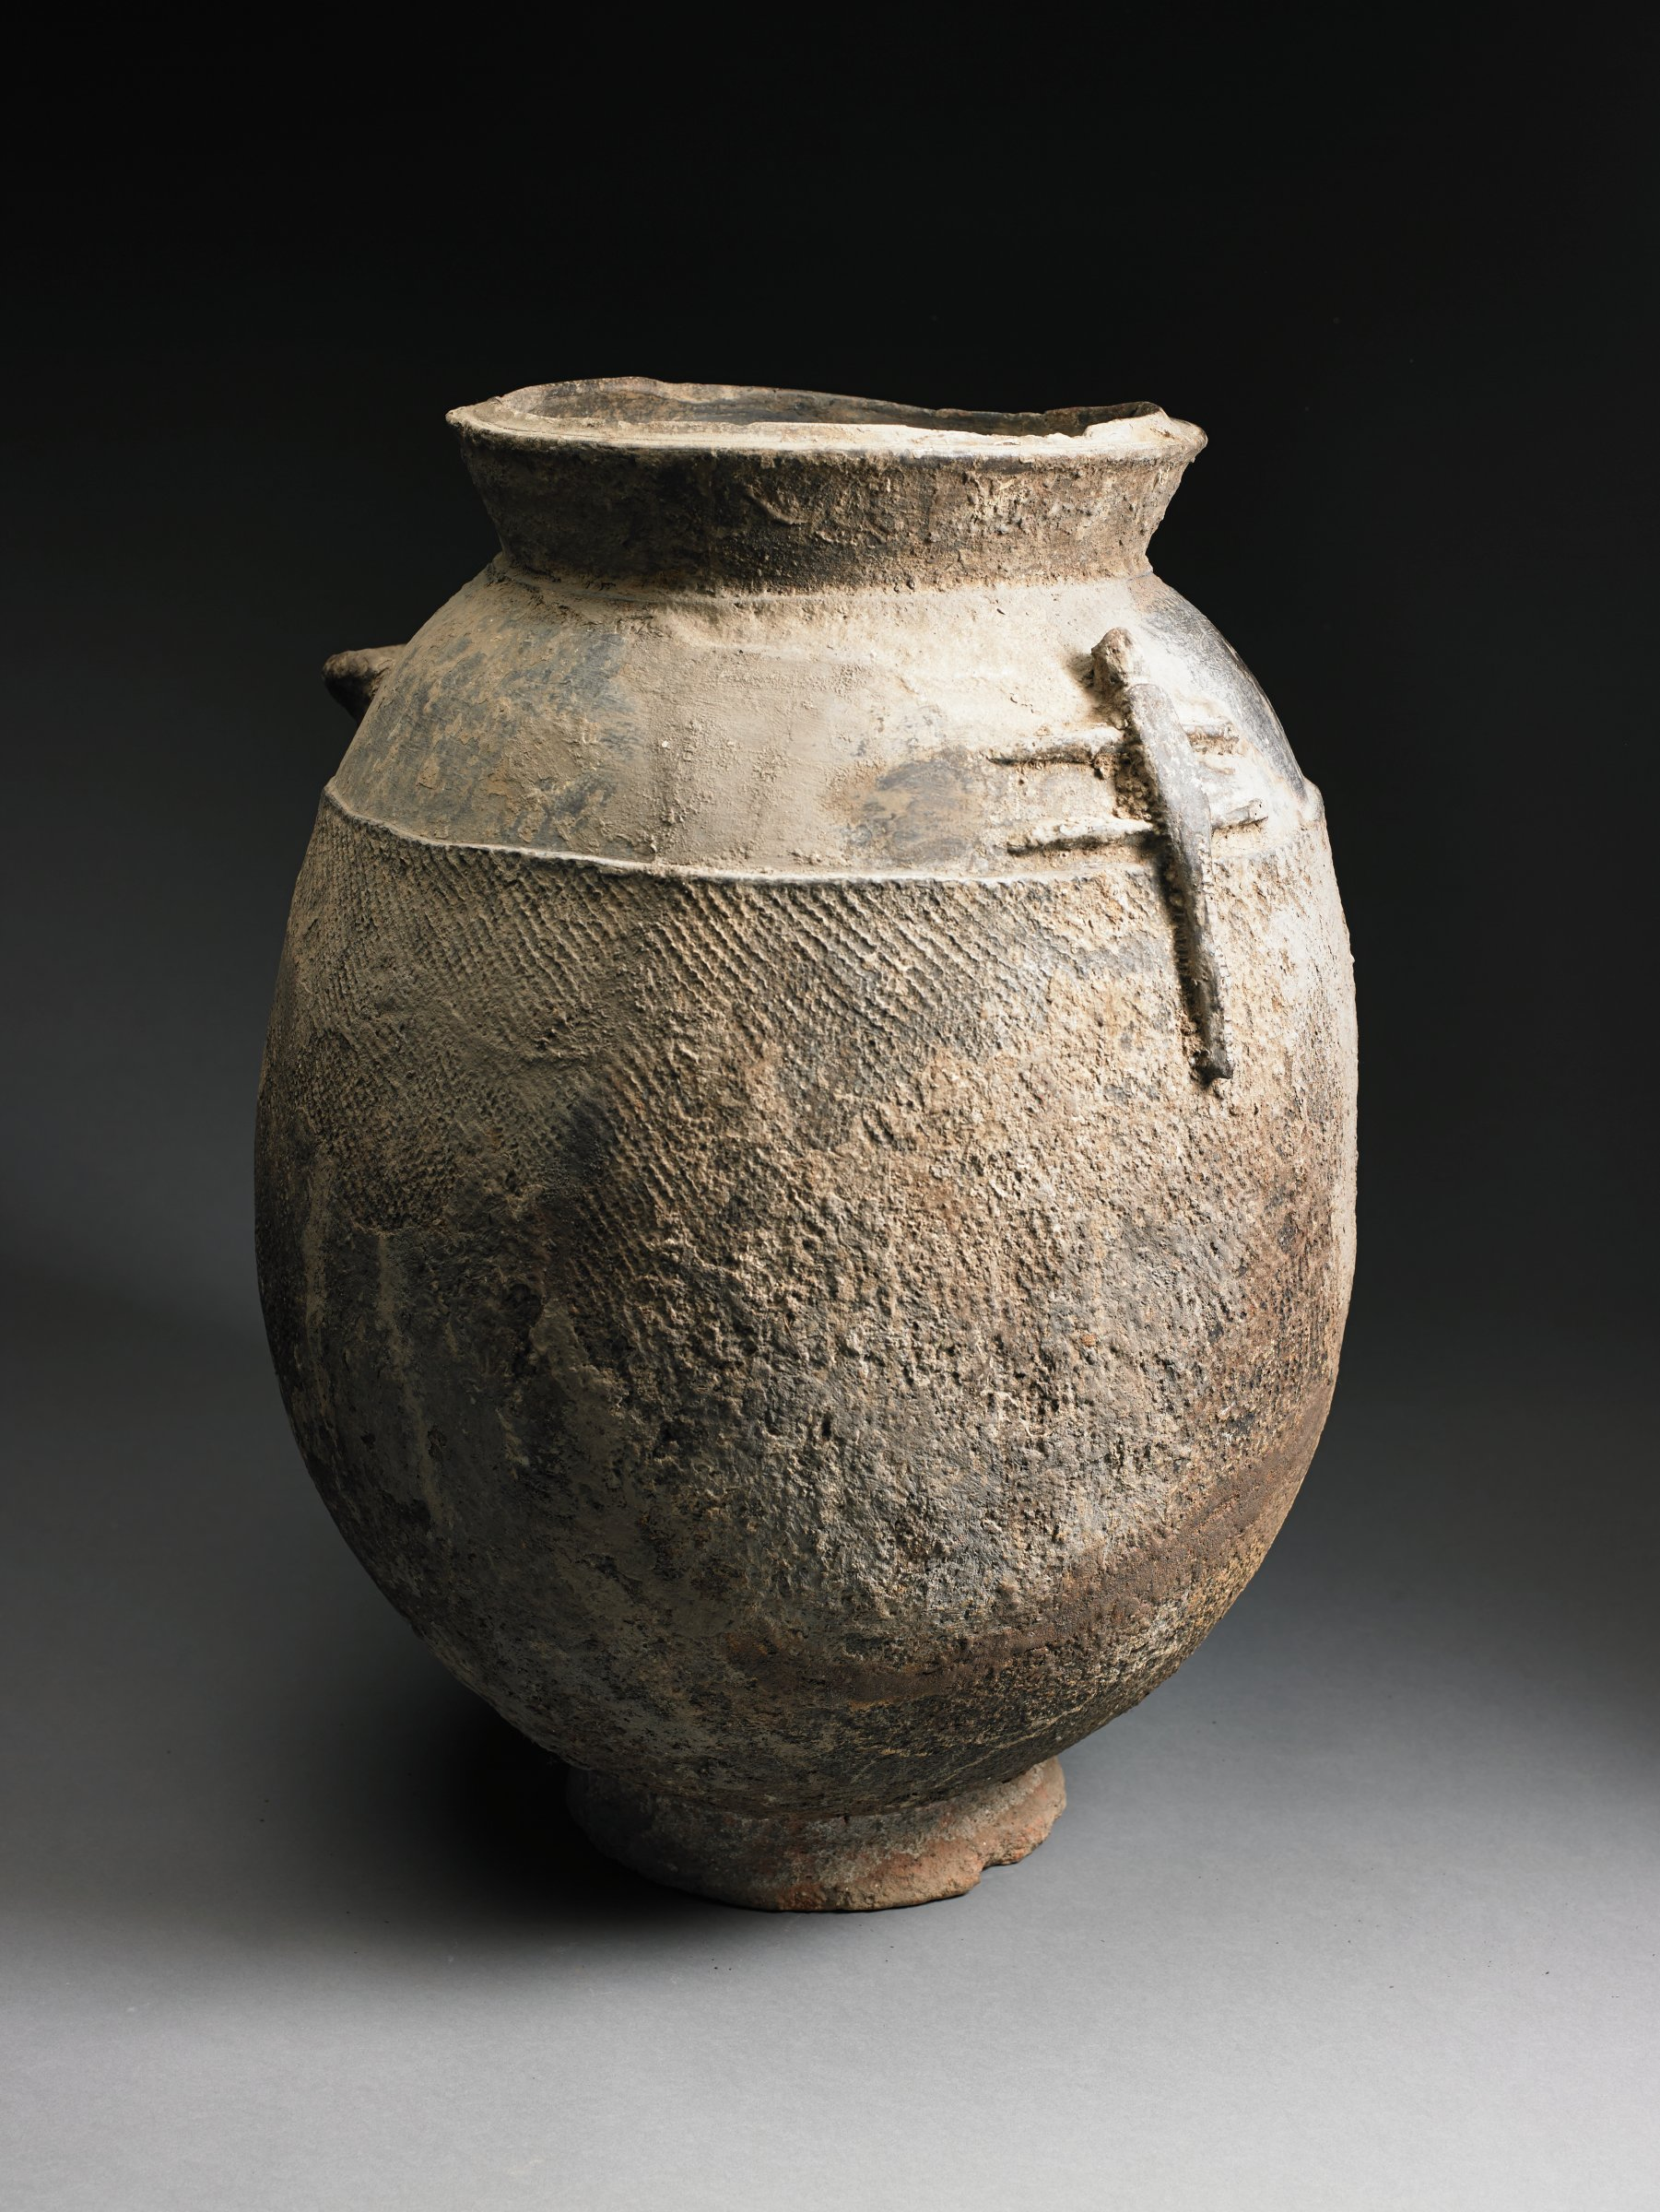 Brown ovoid jar with single ear-shaped handle has short, narrow vertical foot and slightly flared lip. Body of jar has texture from impressed cord and modeled lizard form.